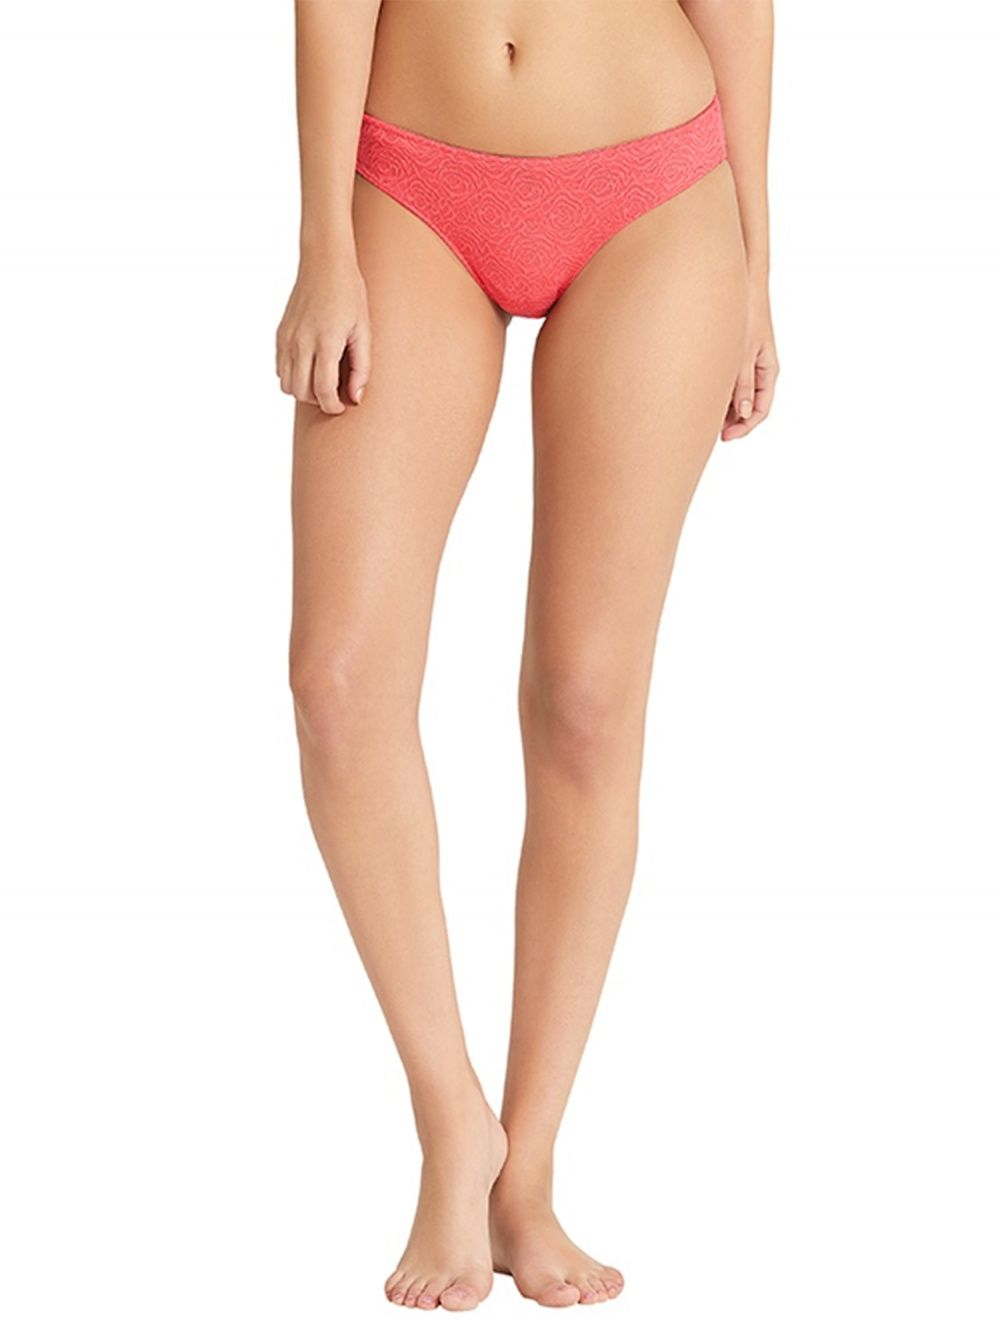 3e8d10889790 Amante Panty : Buy Amante Smooth Romance Low-Rise Bikini - Red ...